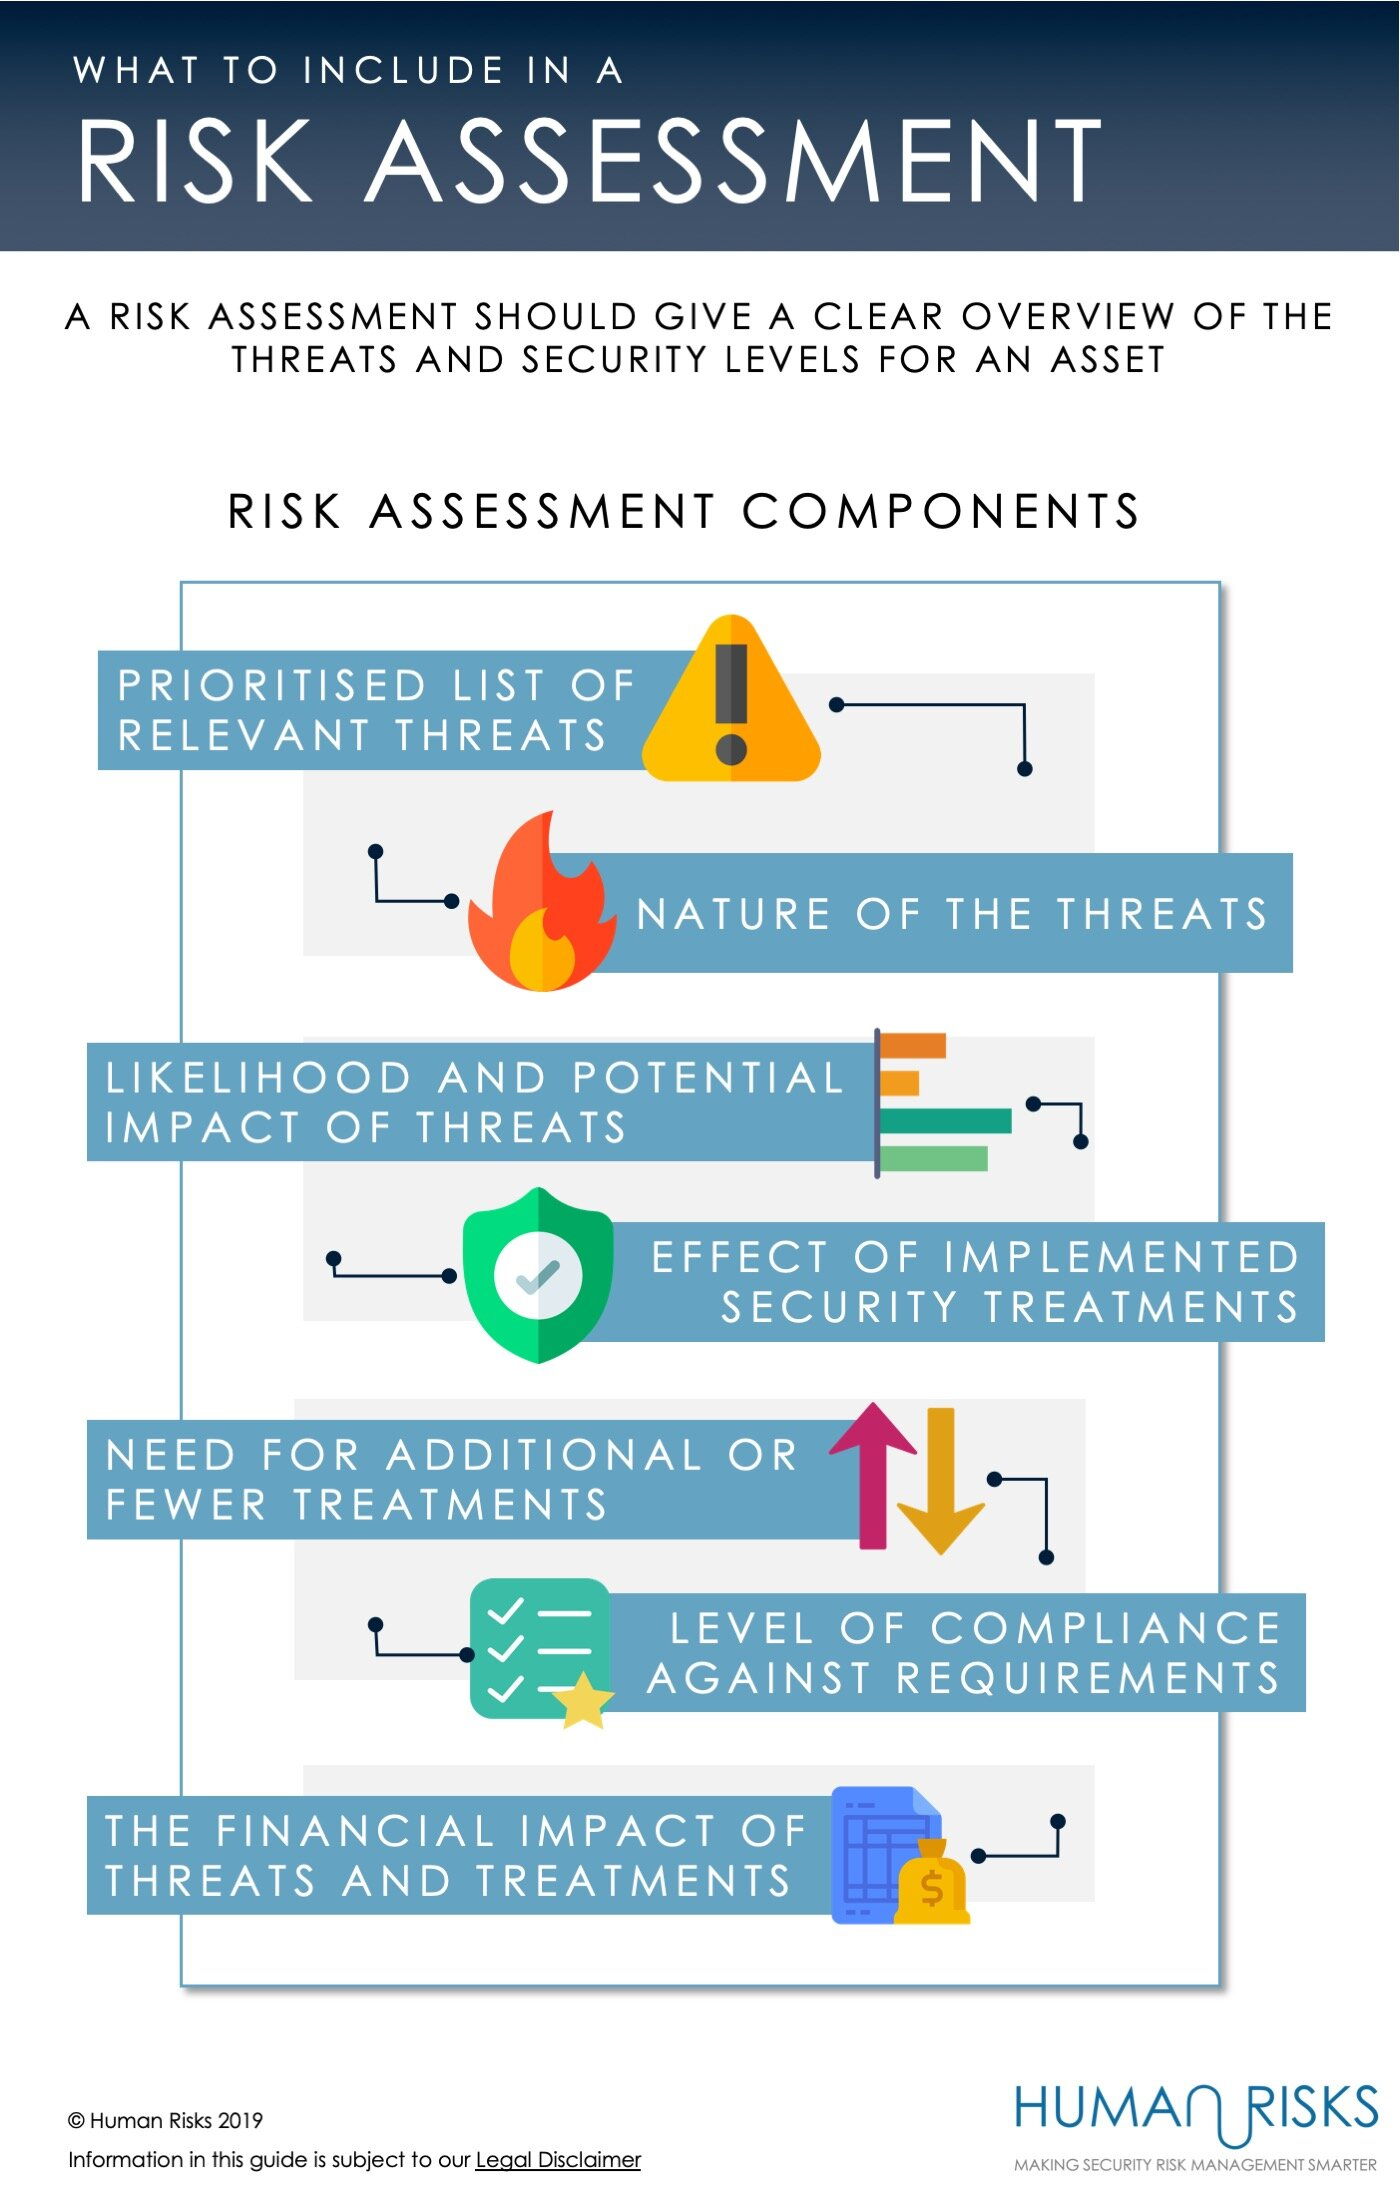 What to include in a Risk Assessment